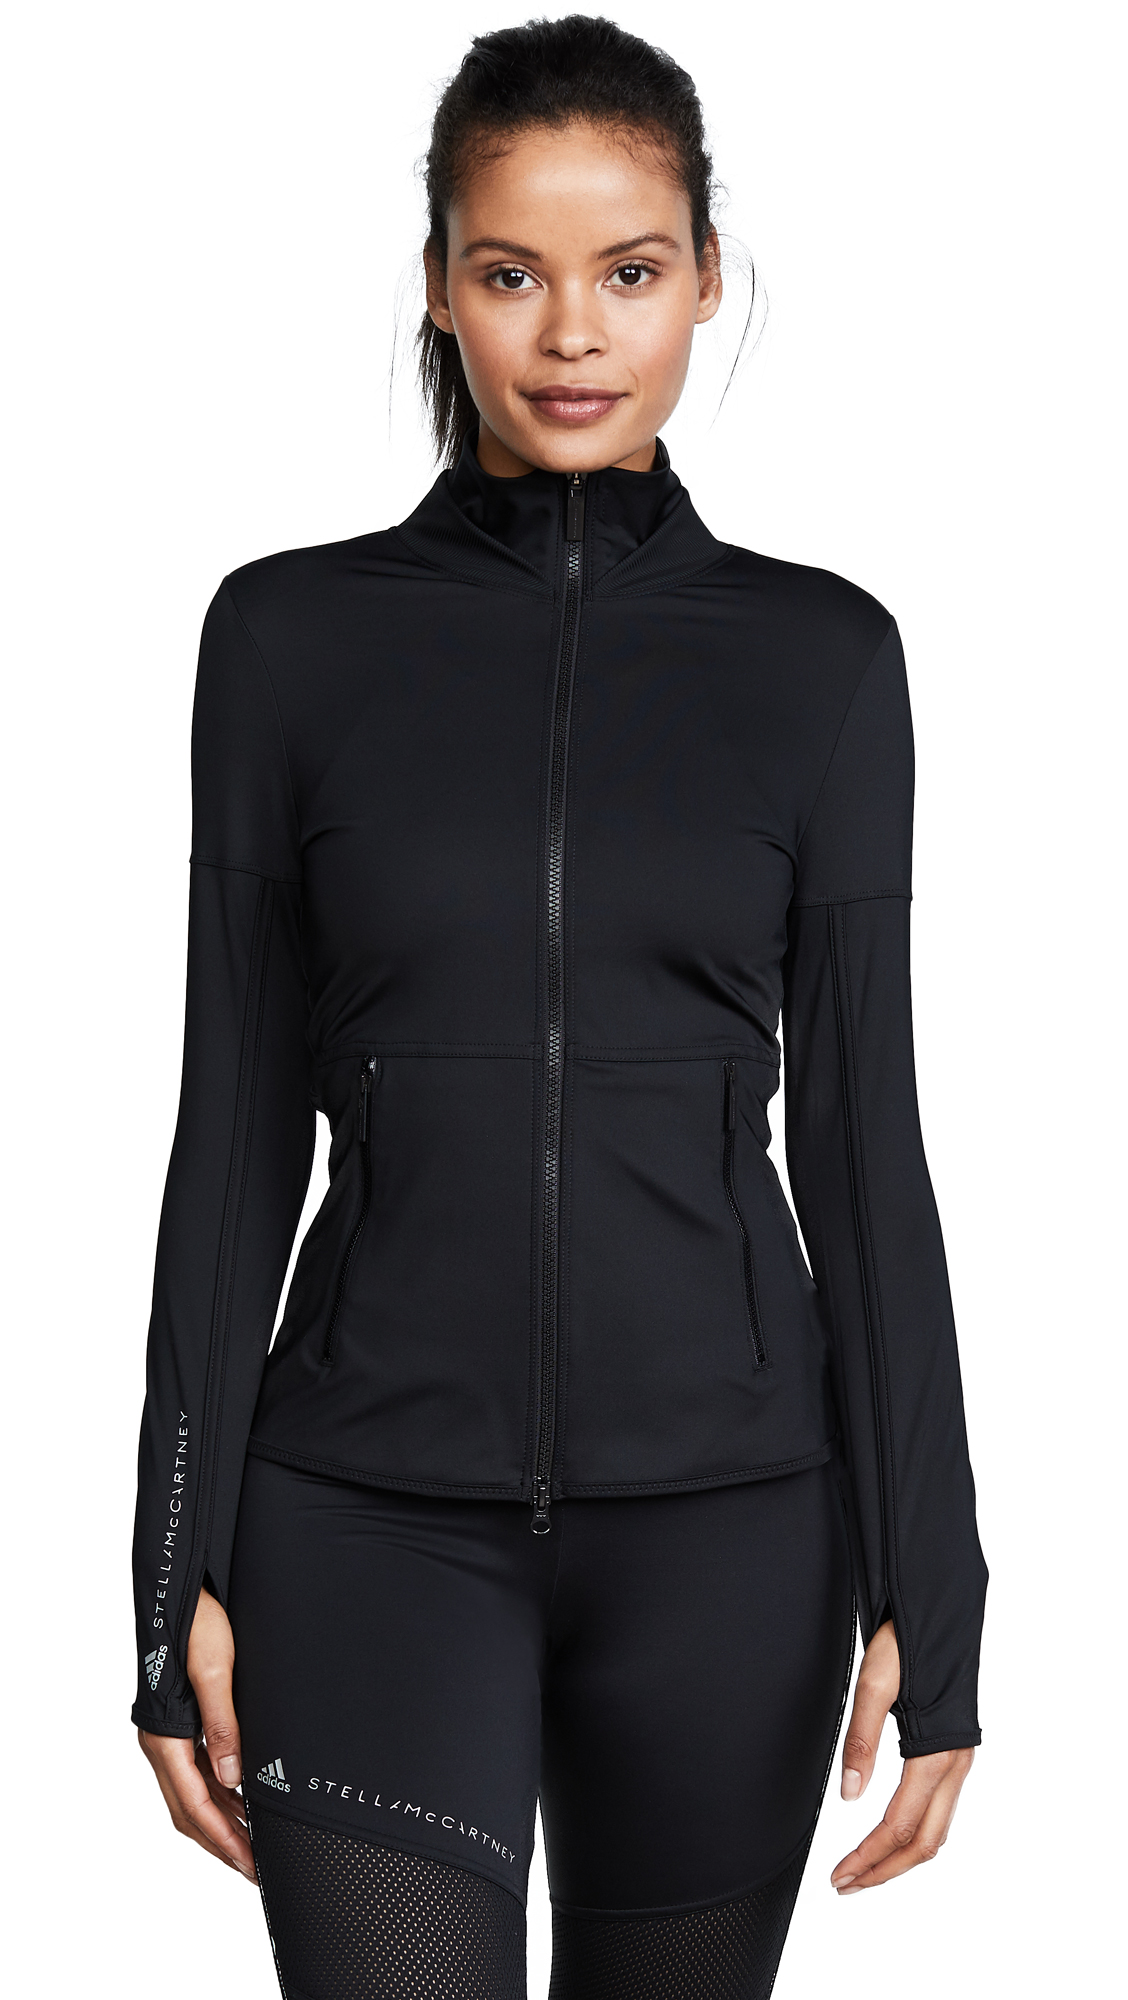 Performance Essentials Mid-Layer Jacket, Black